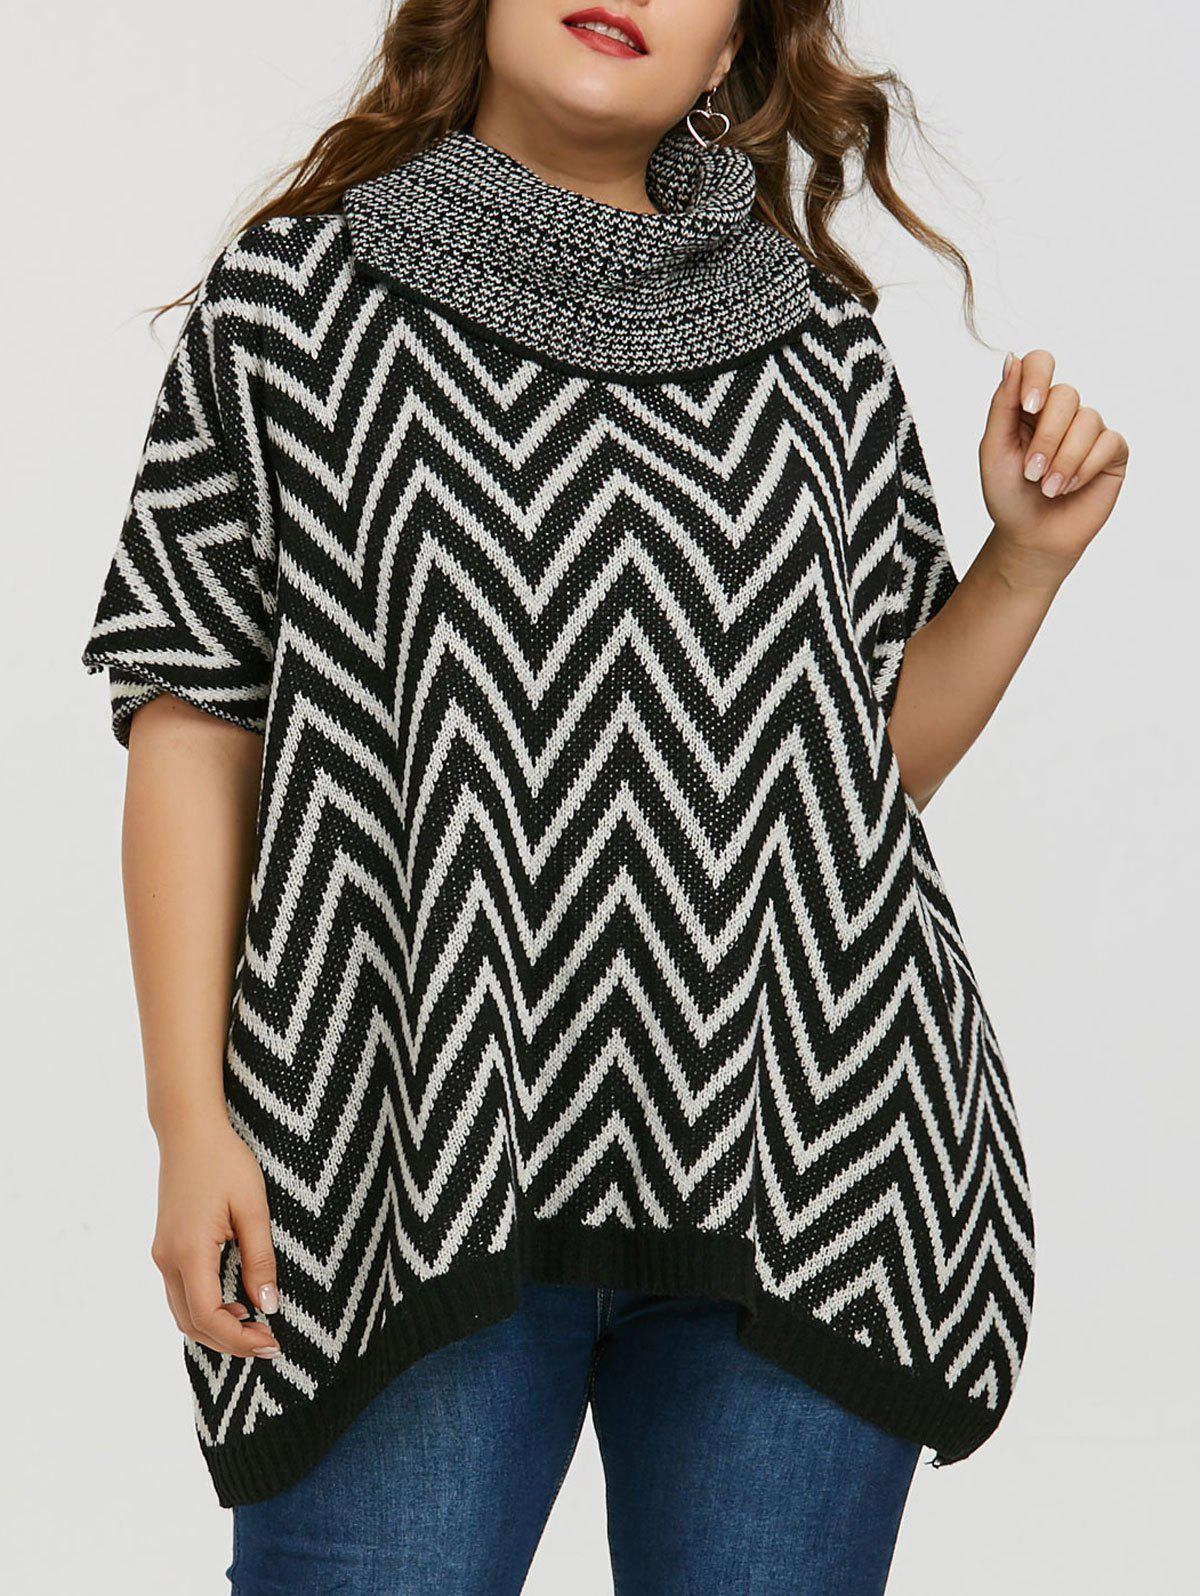 Discount Plus Size Turtleneck Chevron Sweater